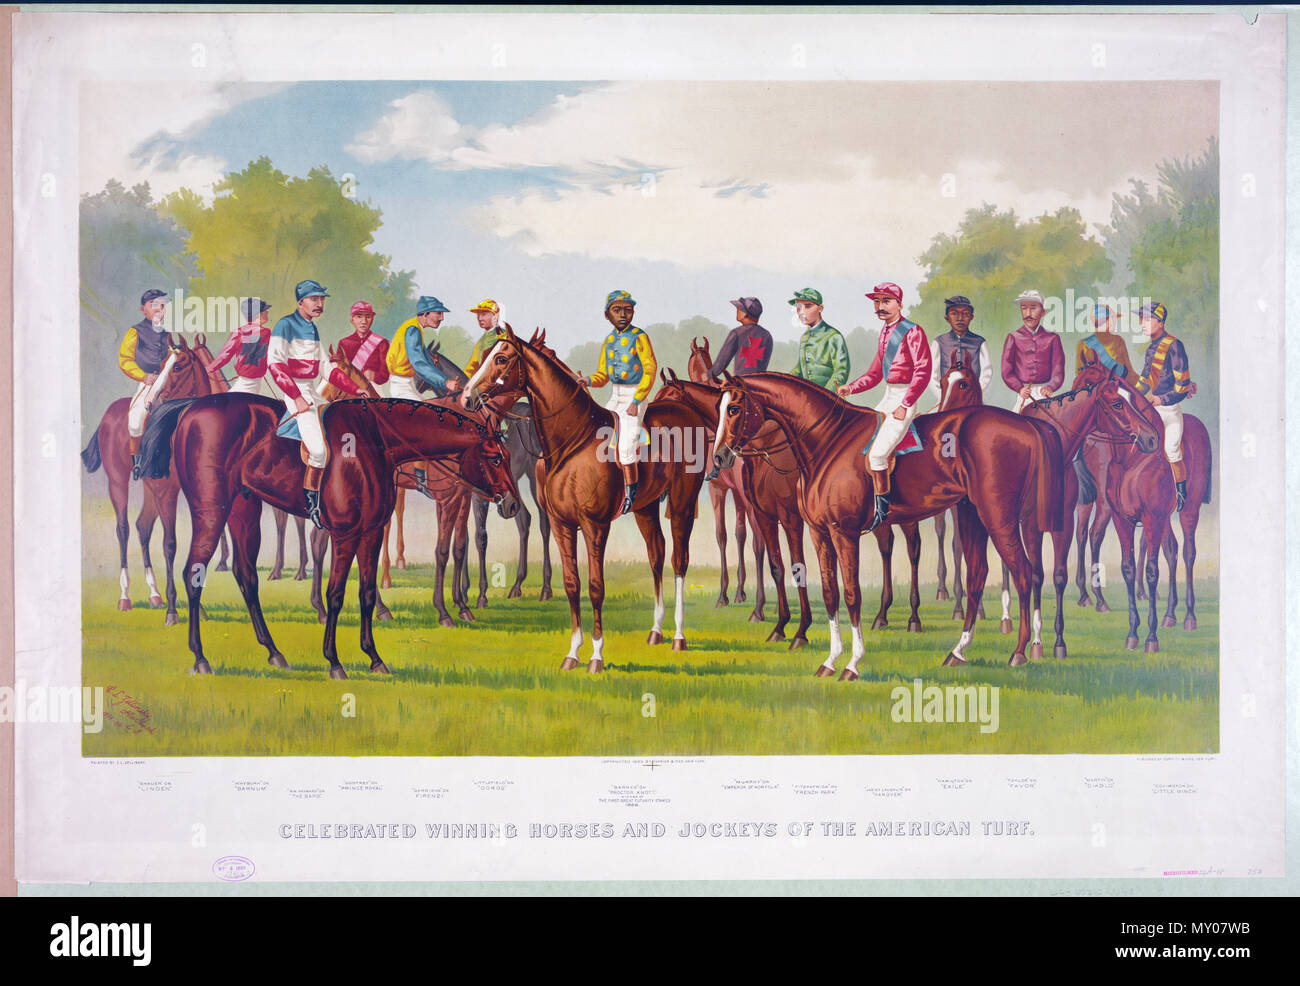 Currier & Ives - Celebrated winning horses and jockeys of the american turf c 1889 - Stock Image